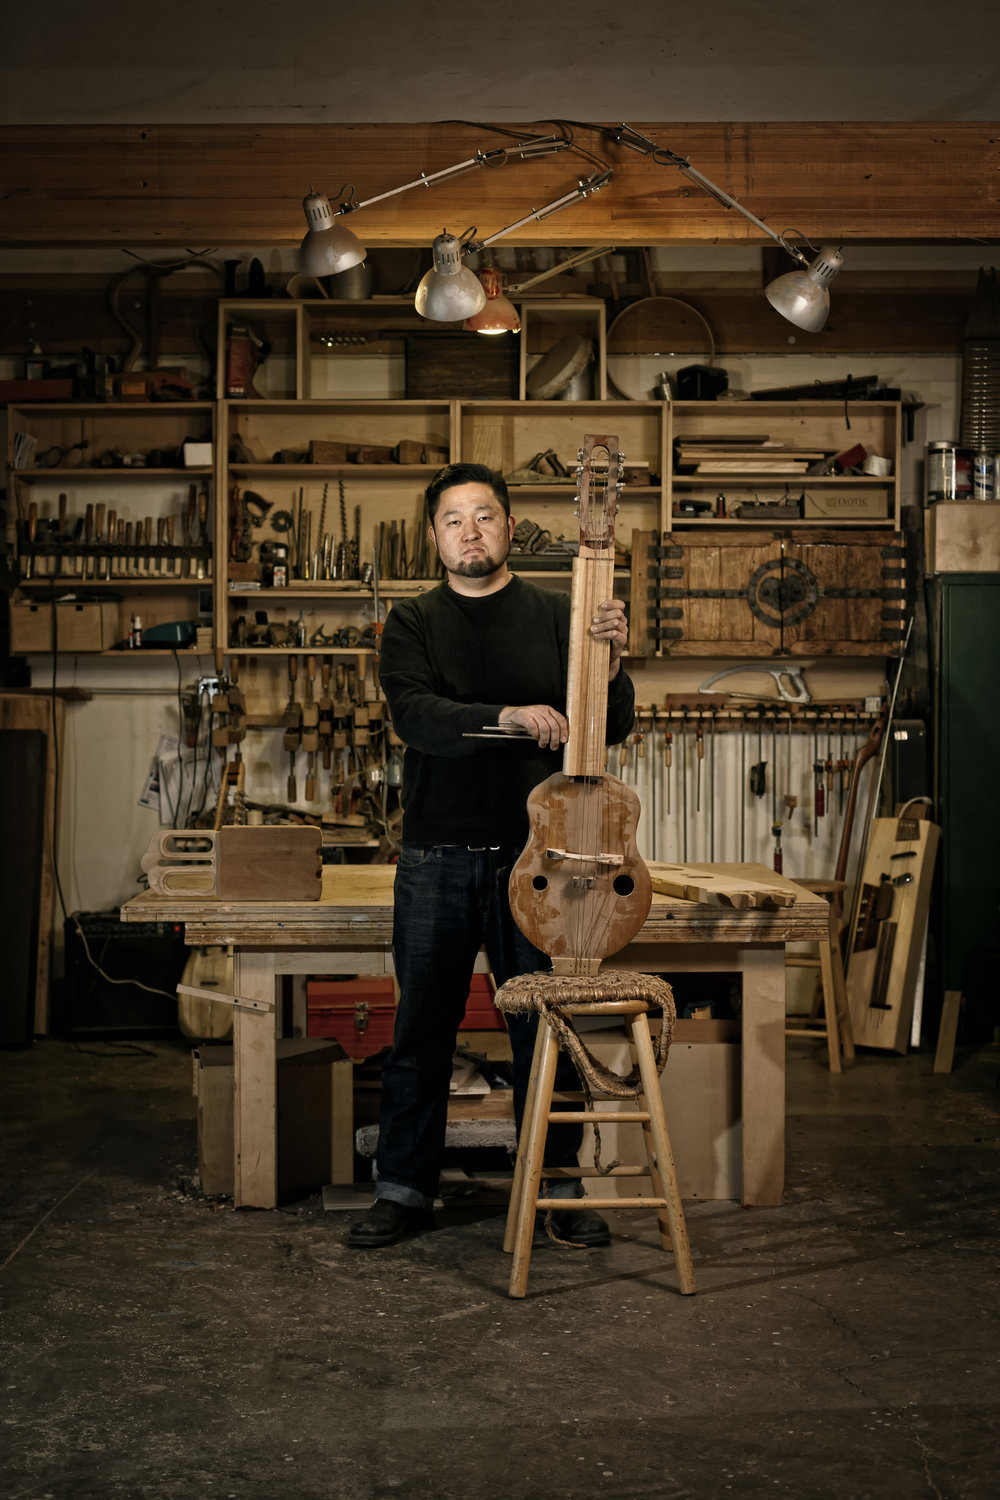 Sung Kim with his homemade instruments